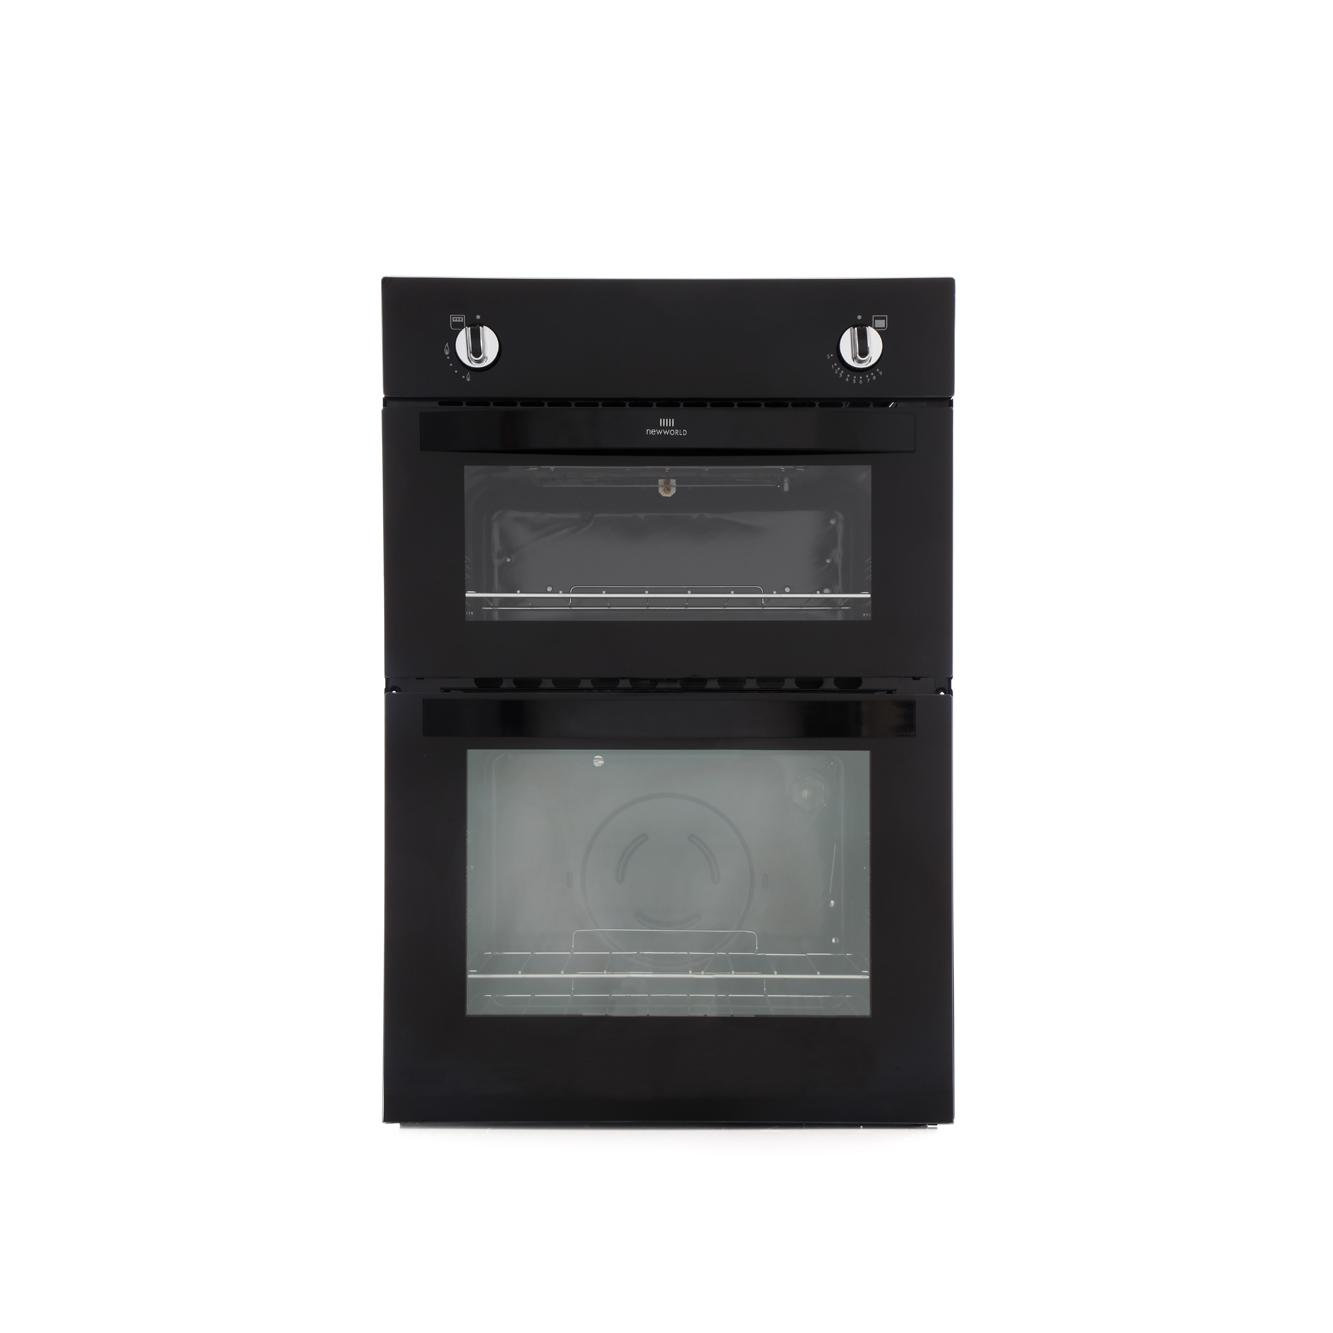 new world nw901g black built in gas oven separate grill. Black Bedroom Furniture Sets. Home Design Ideas